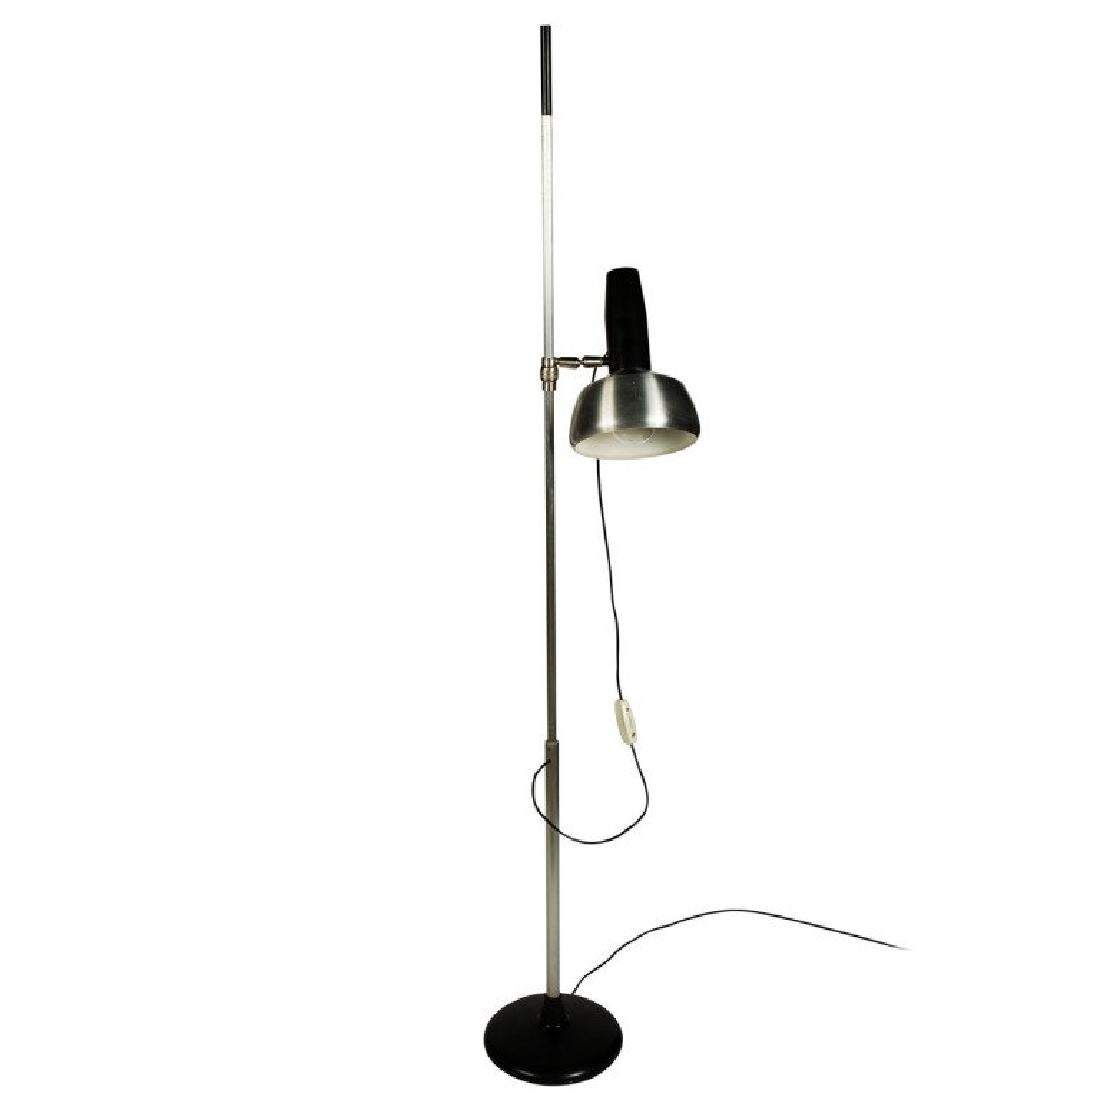 Oscar Torlasco Floor Light